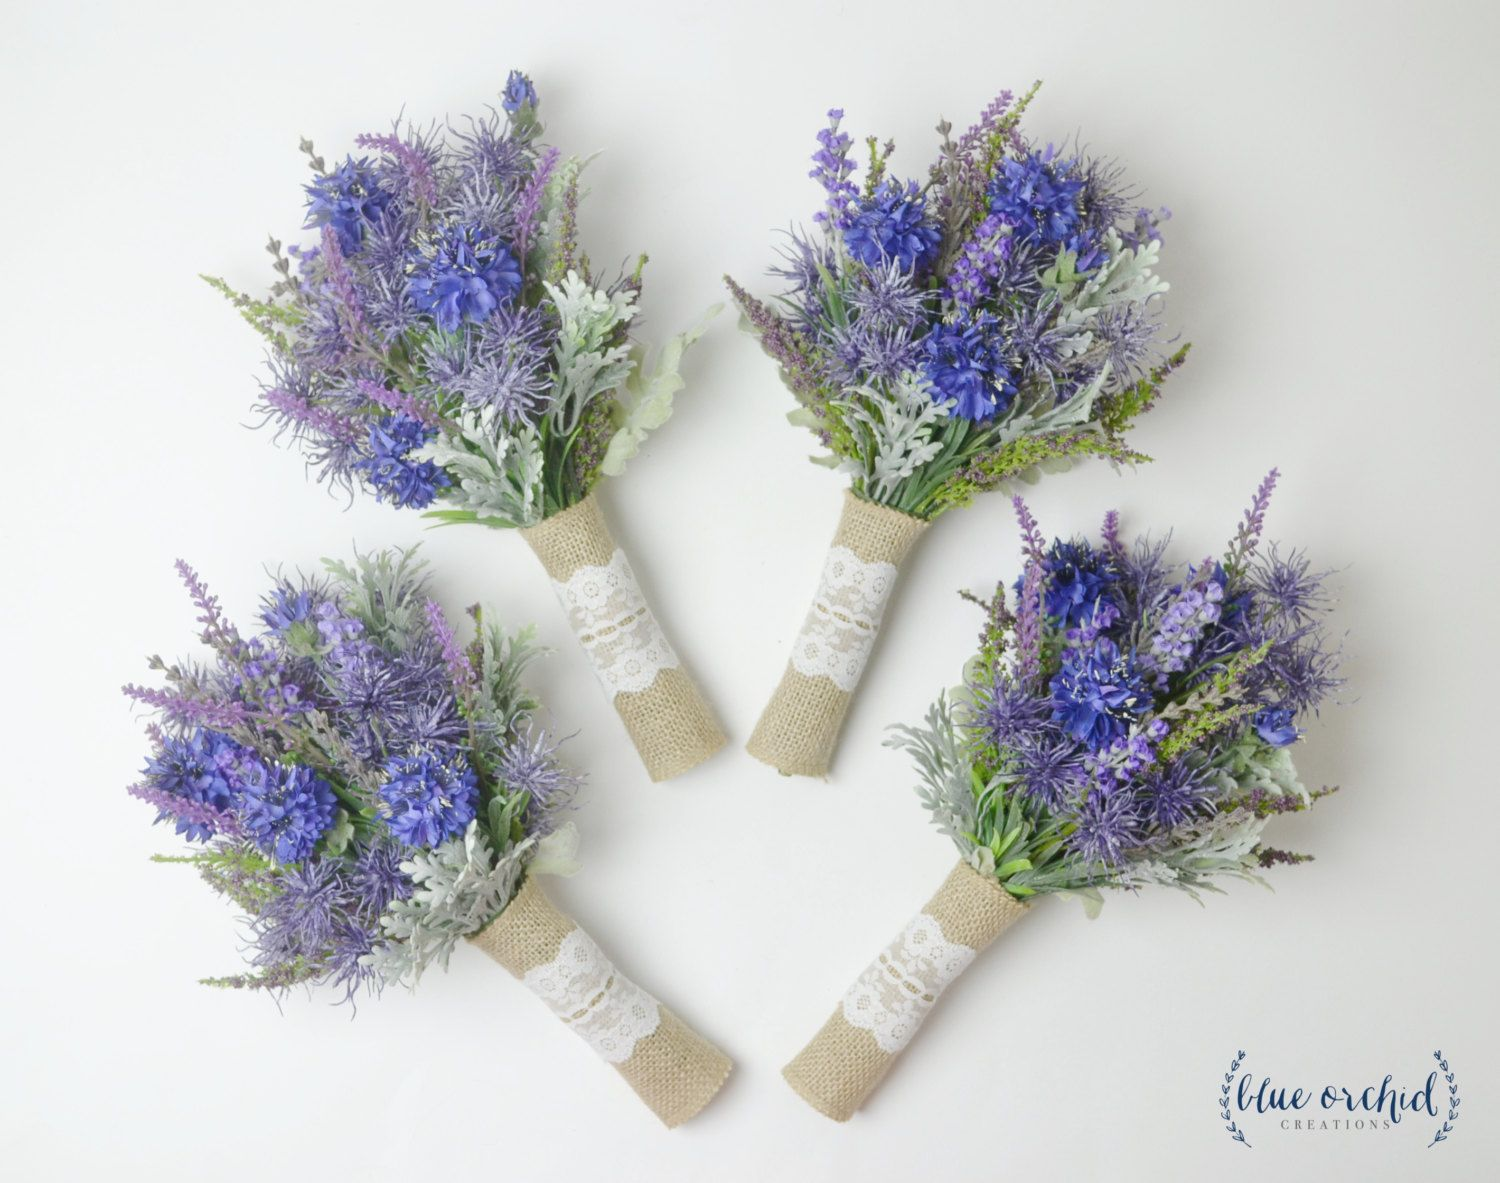 Wildflower Bridesmaid Bouquets Lavender Bouquets Bridesmaid Etsy Small Bouquet Woodland Wedding Bouquet Small Bridal Bouquets